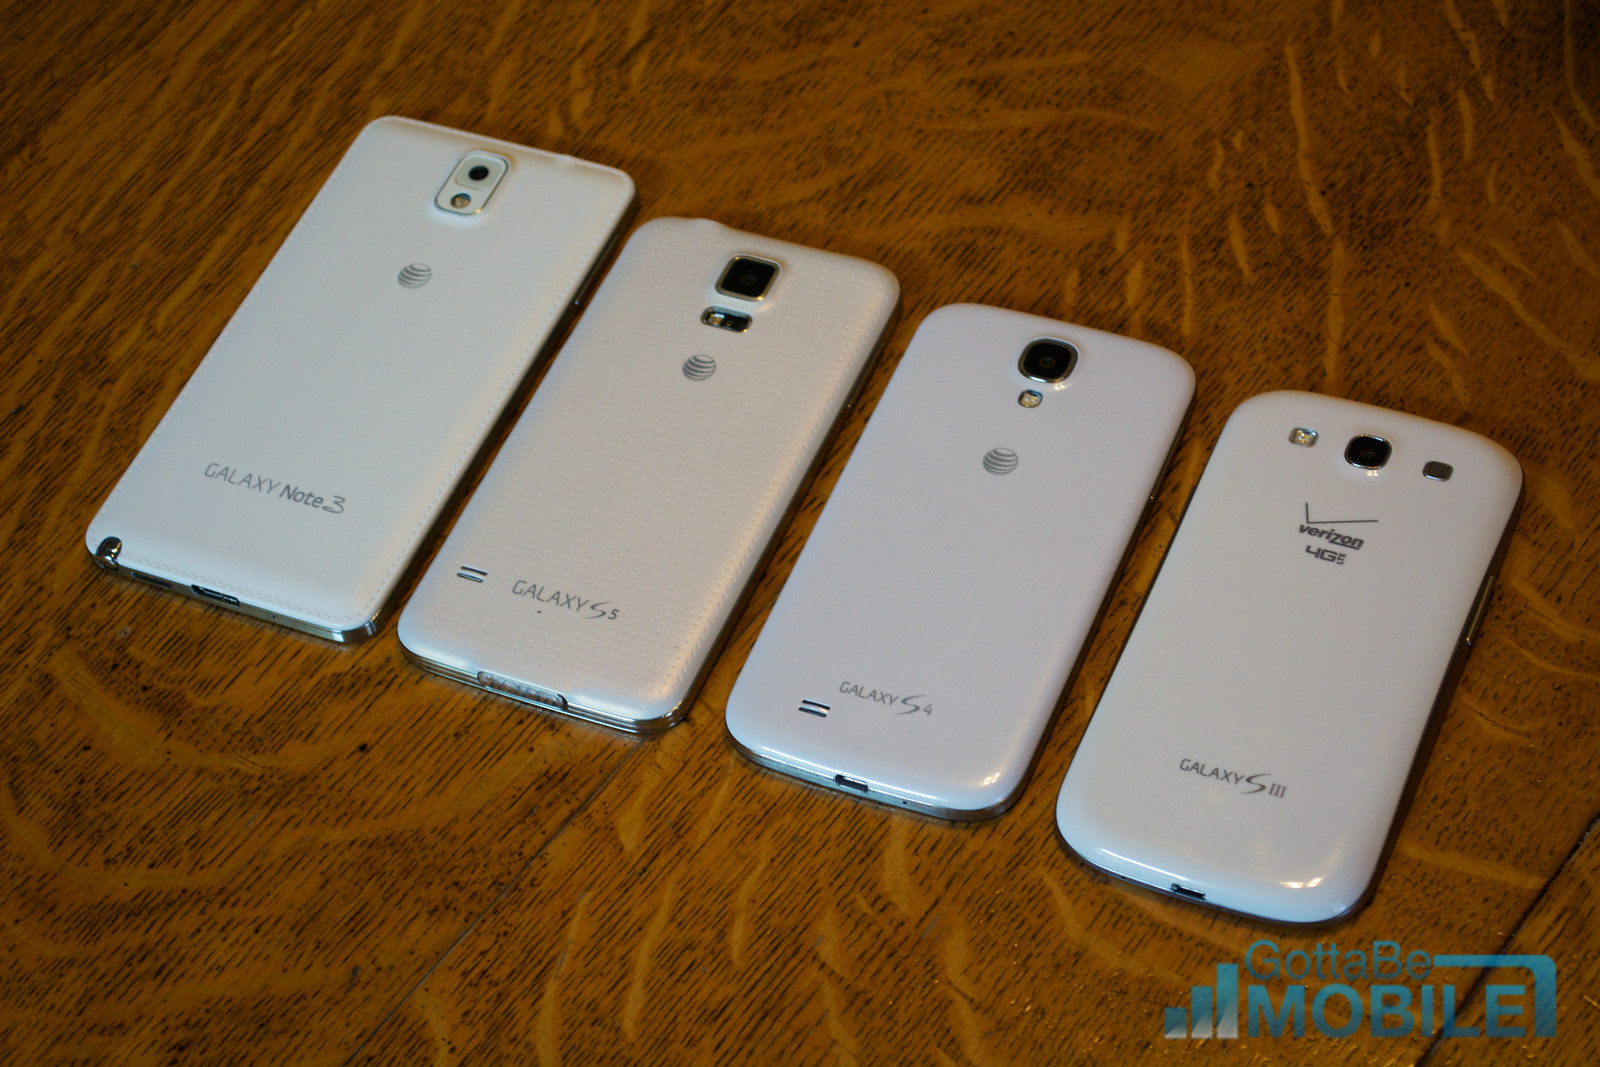 Samsung galaxy s4 mini coming soon at telstra in australia - Samsung Galaxy S5 Vs Galaxy S4 Vs Galaxy S3 Features